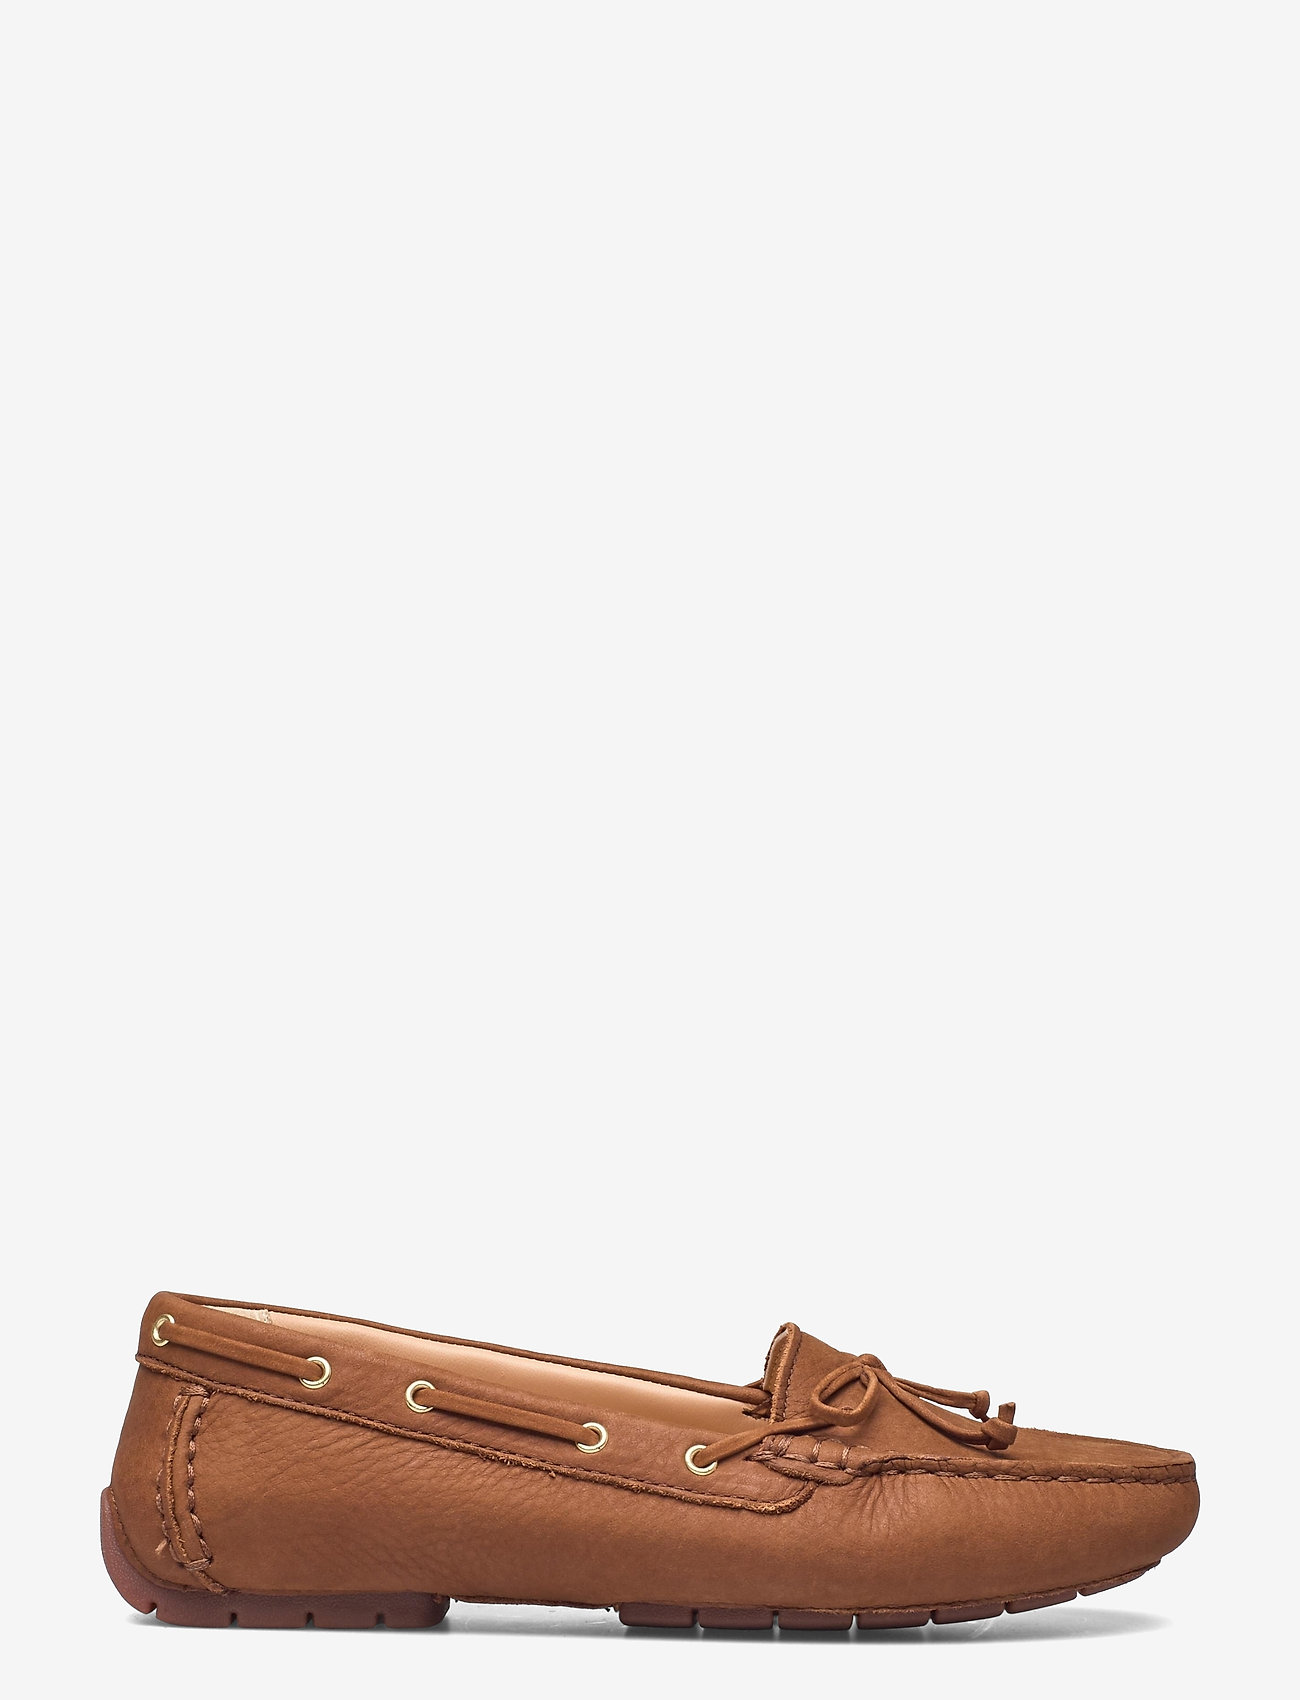 Clarks - C Mocc Boat2 - loafers - tan leather - 1